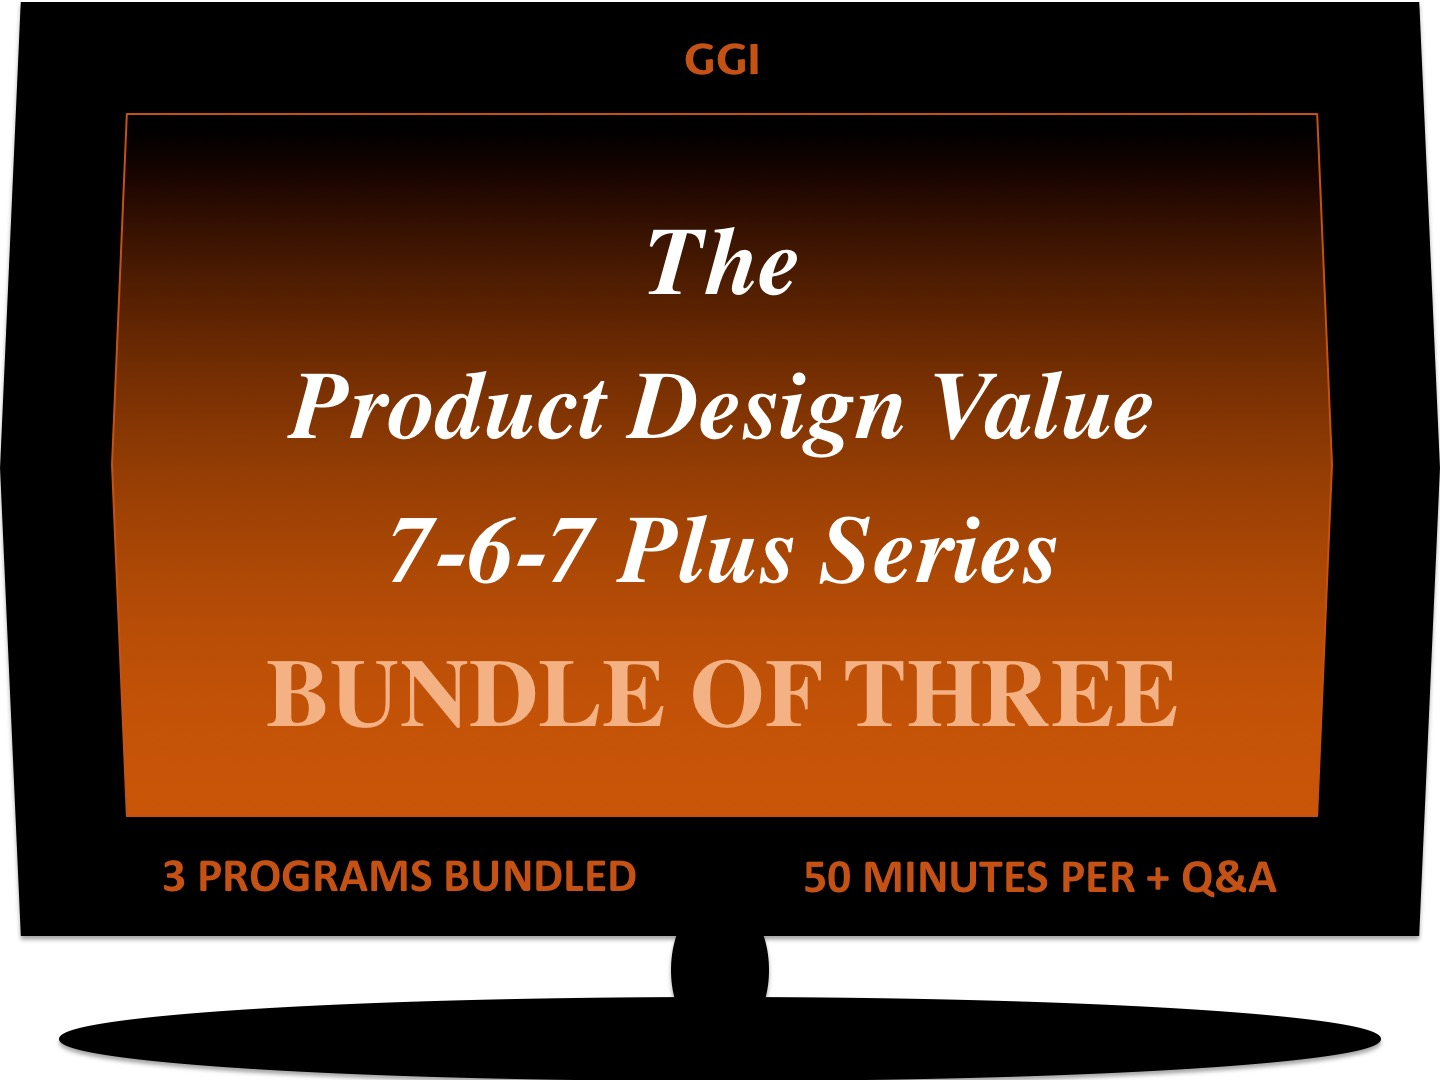 The Product Design Value 7-6-7 Plus Series